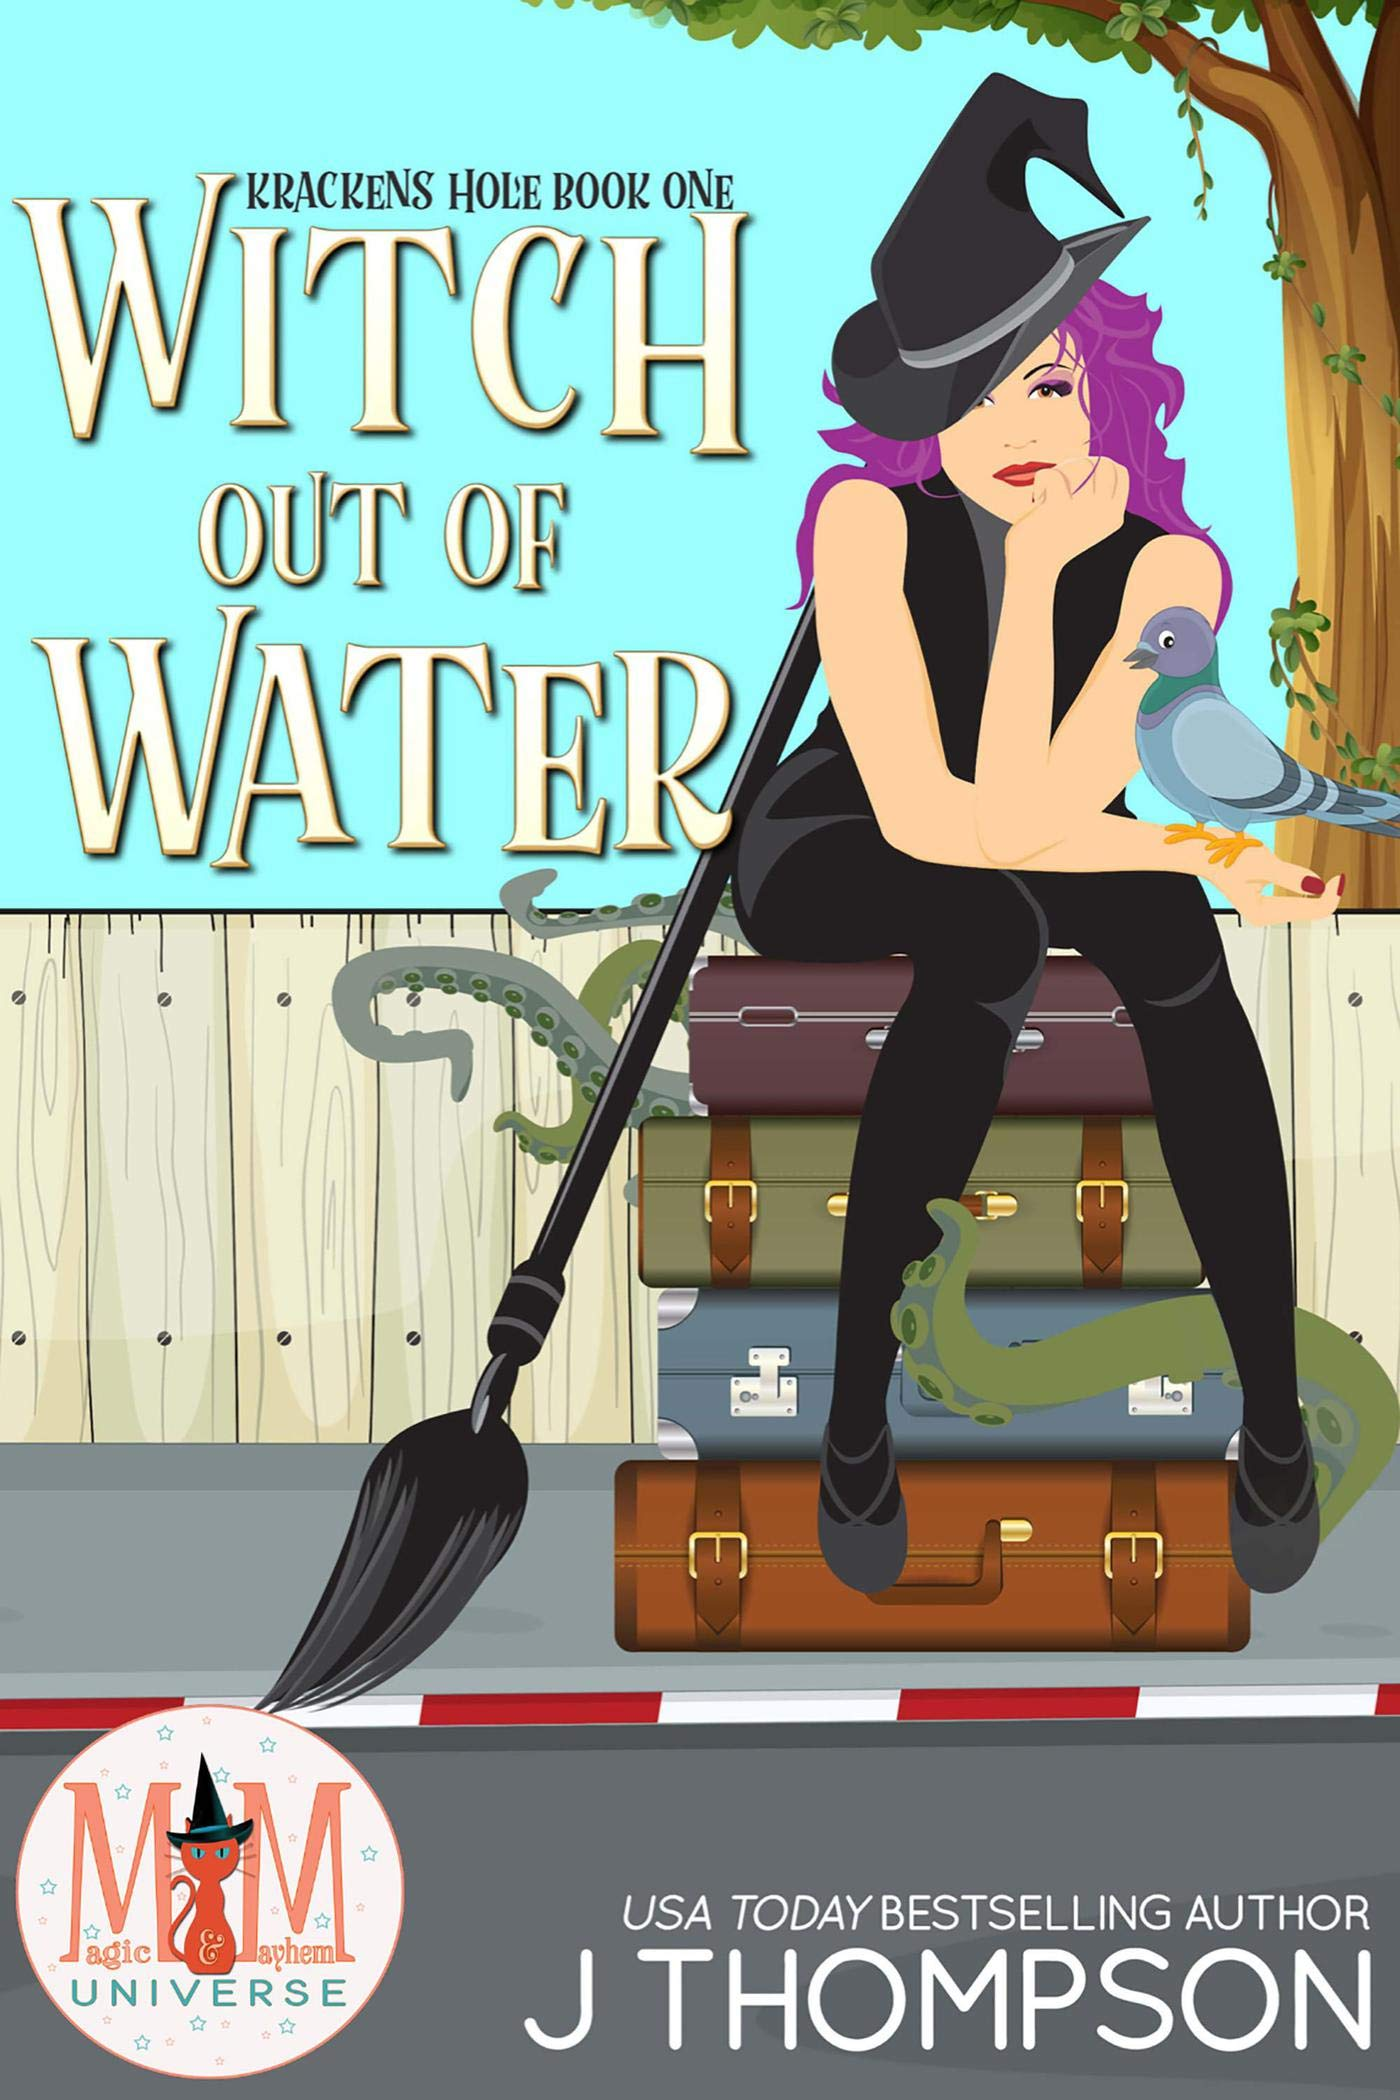 Witch Out of Water (Magic and Mayhem Universe / Kracken's Hole, #1)